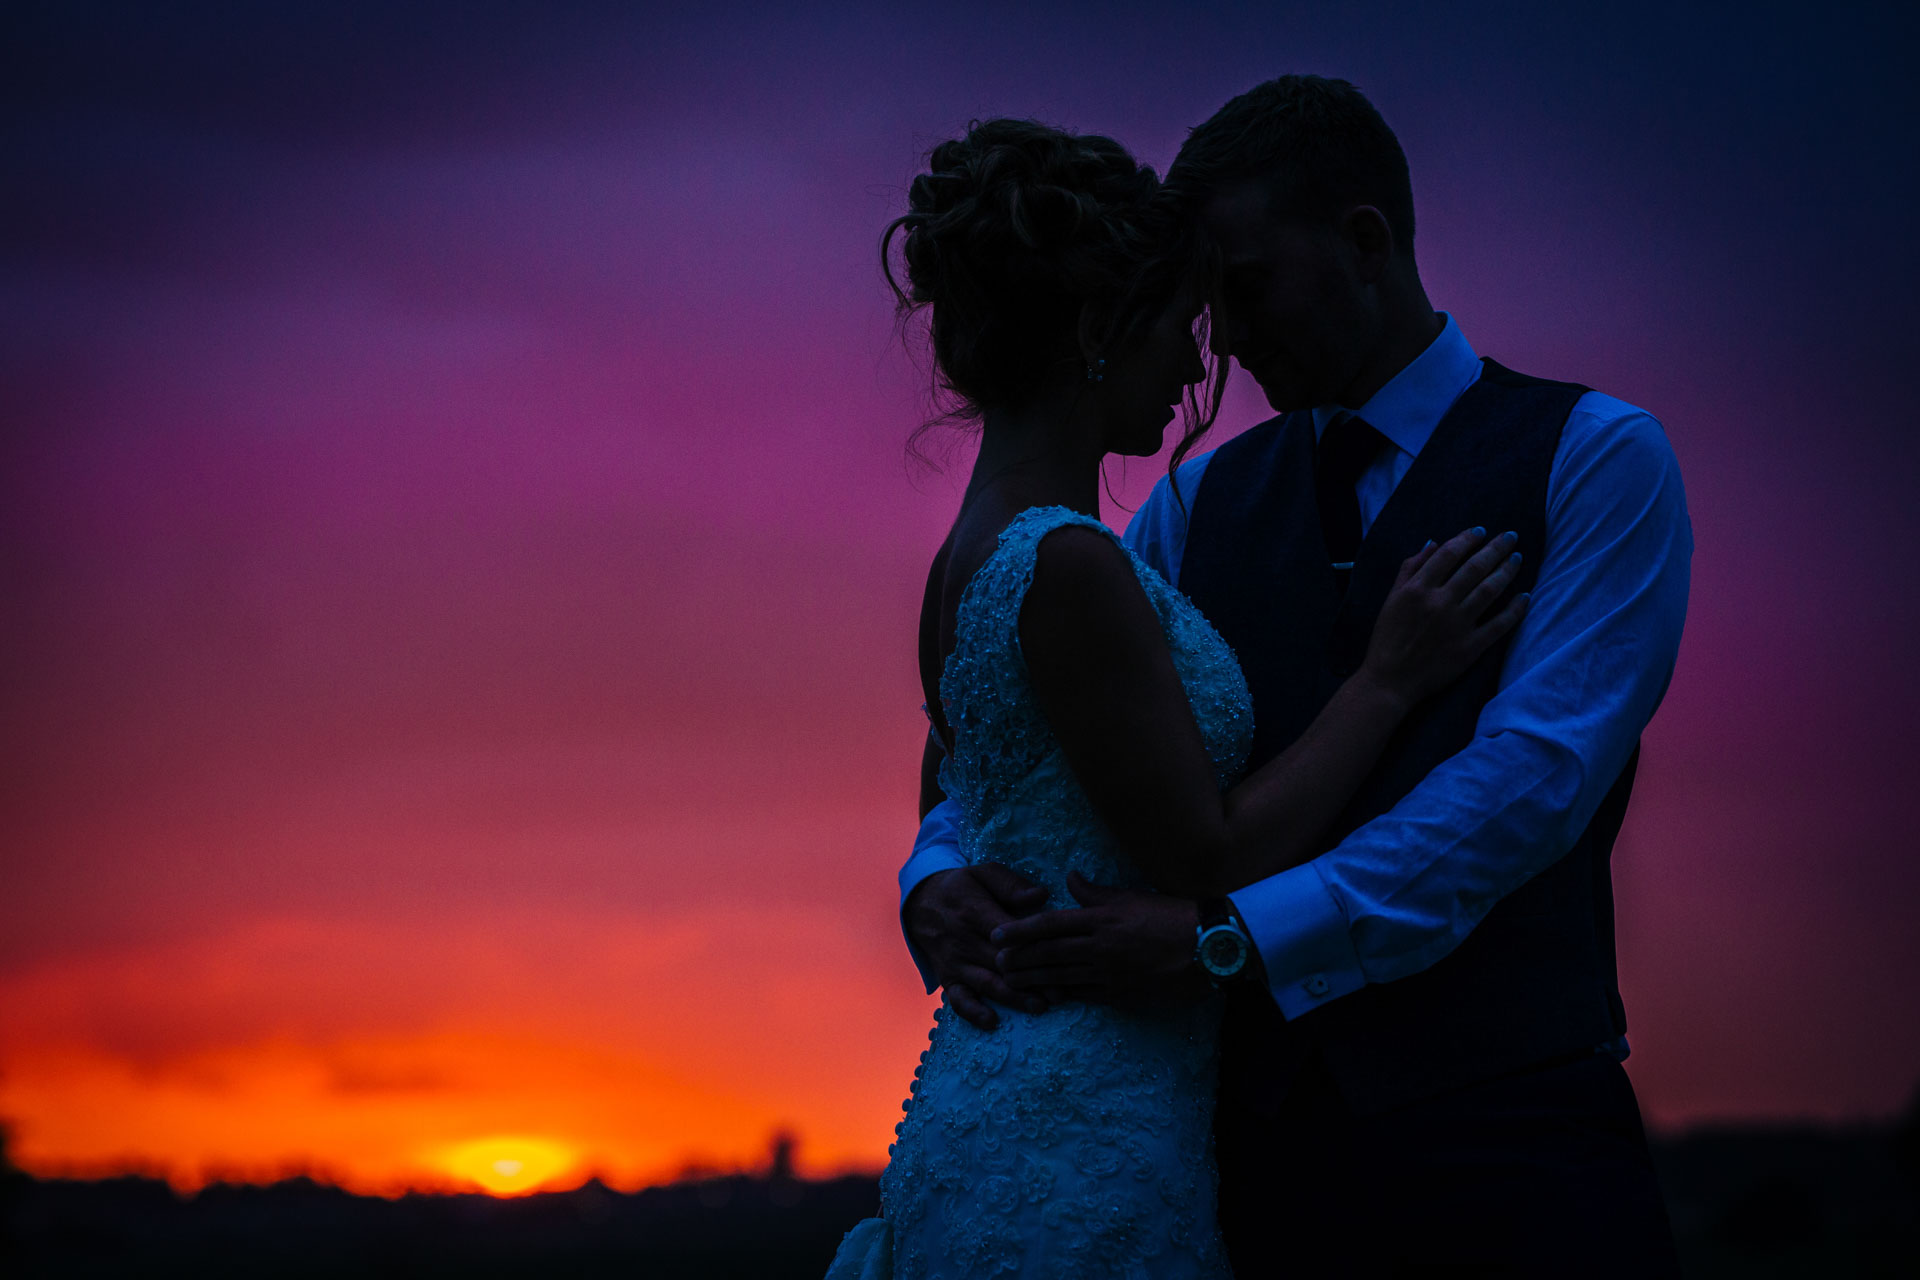 Tim & Laura's Sunset - Joanna Eardley Photography